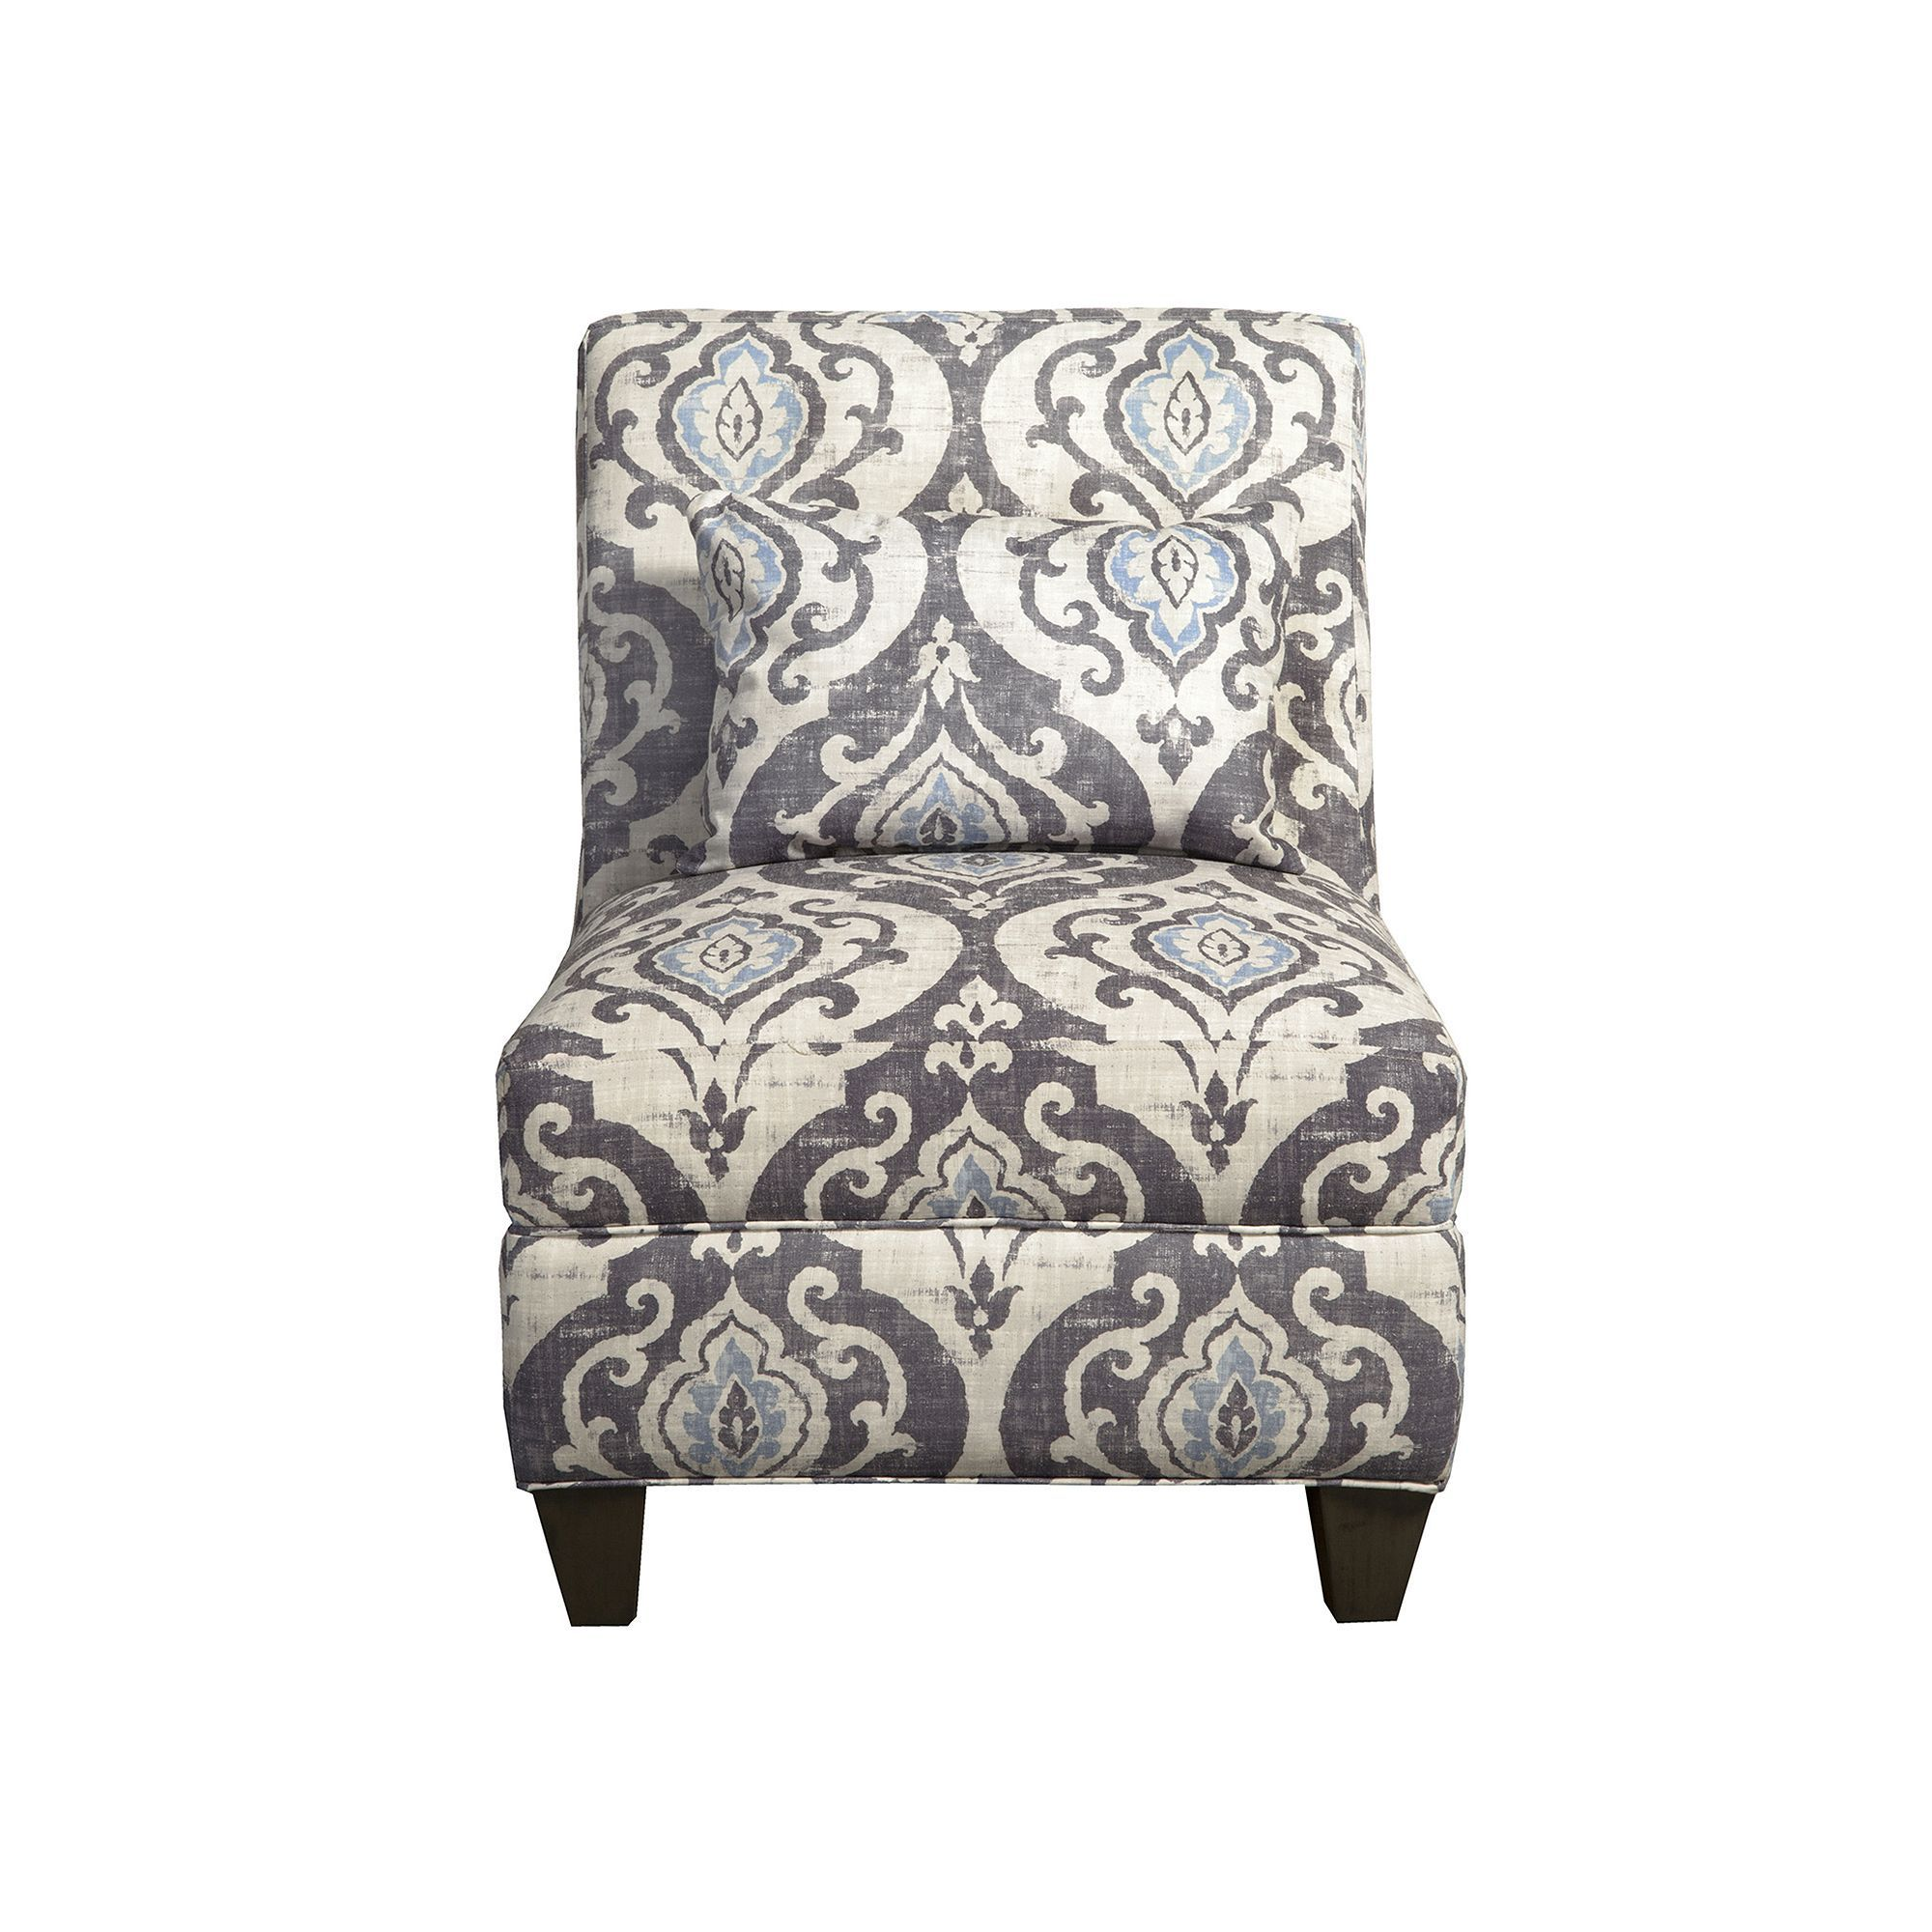 Set Of 2 Living Room Accent Chairs.Homepop Accent Chair Throw Pillow 2 Piece Set Products Living